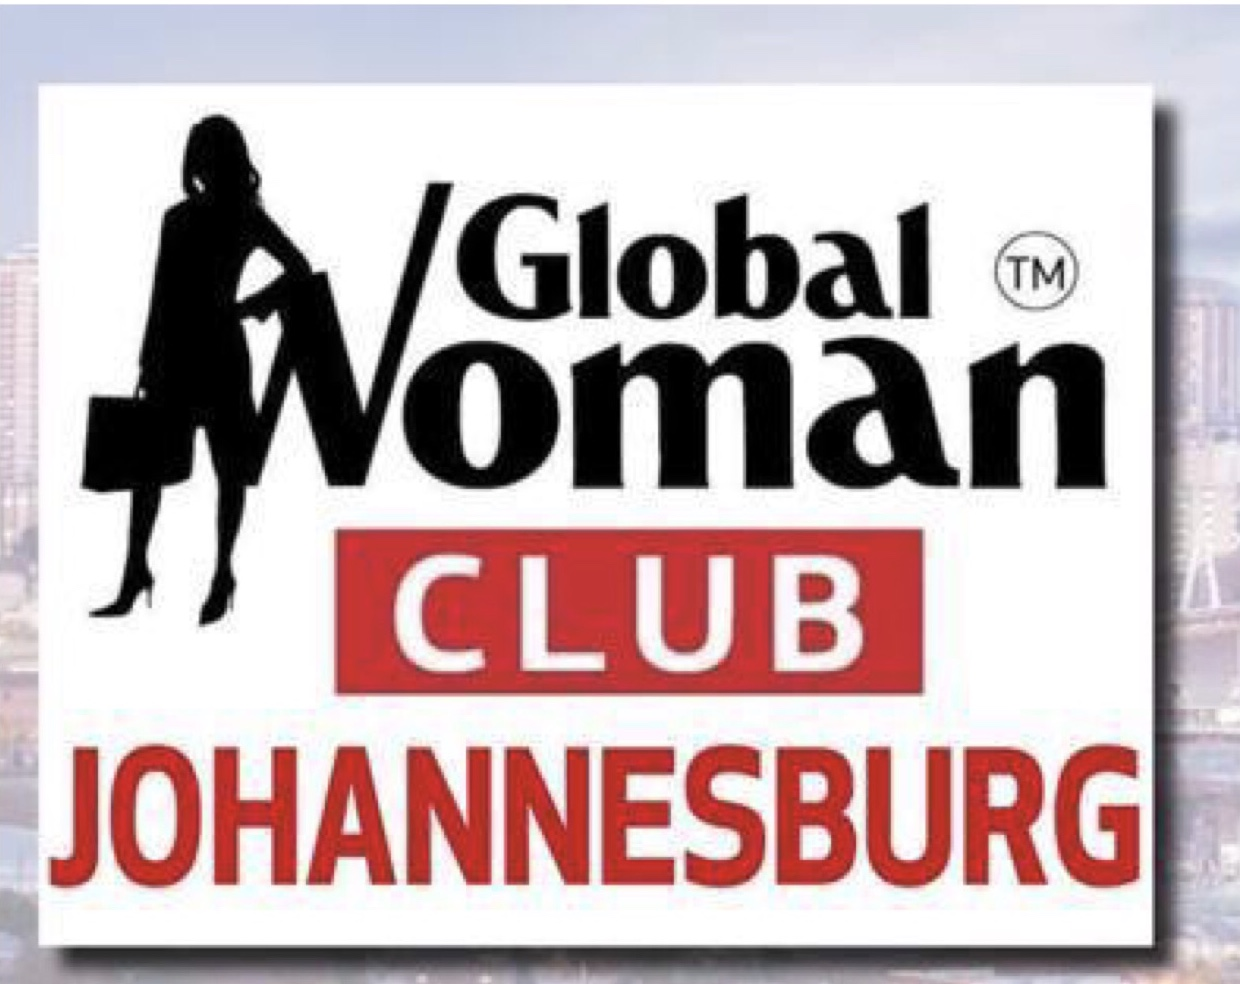 GLOBAL WOMAN CLUB Johannesburg: BUSINESS NETWORKING MEETING - March